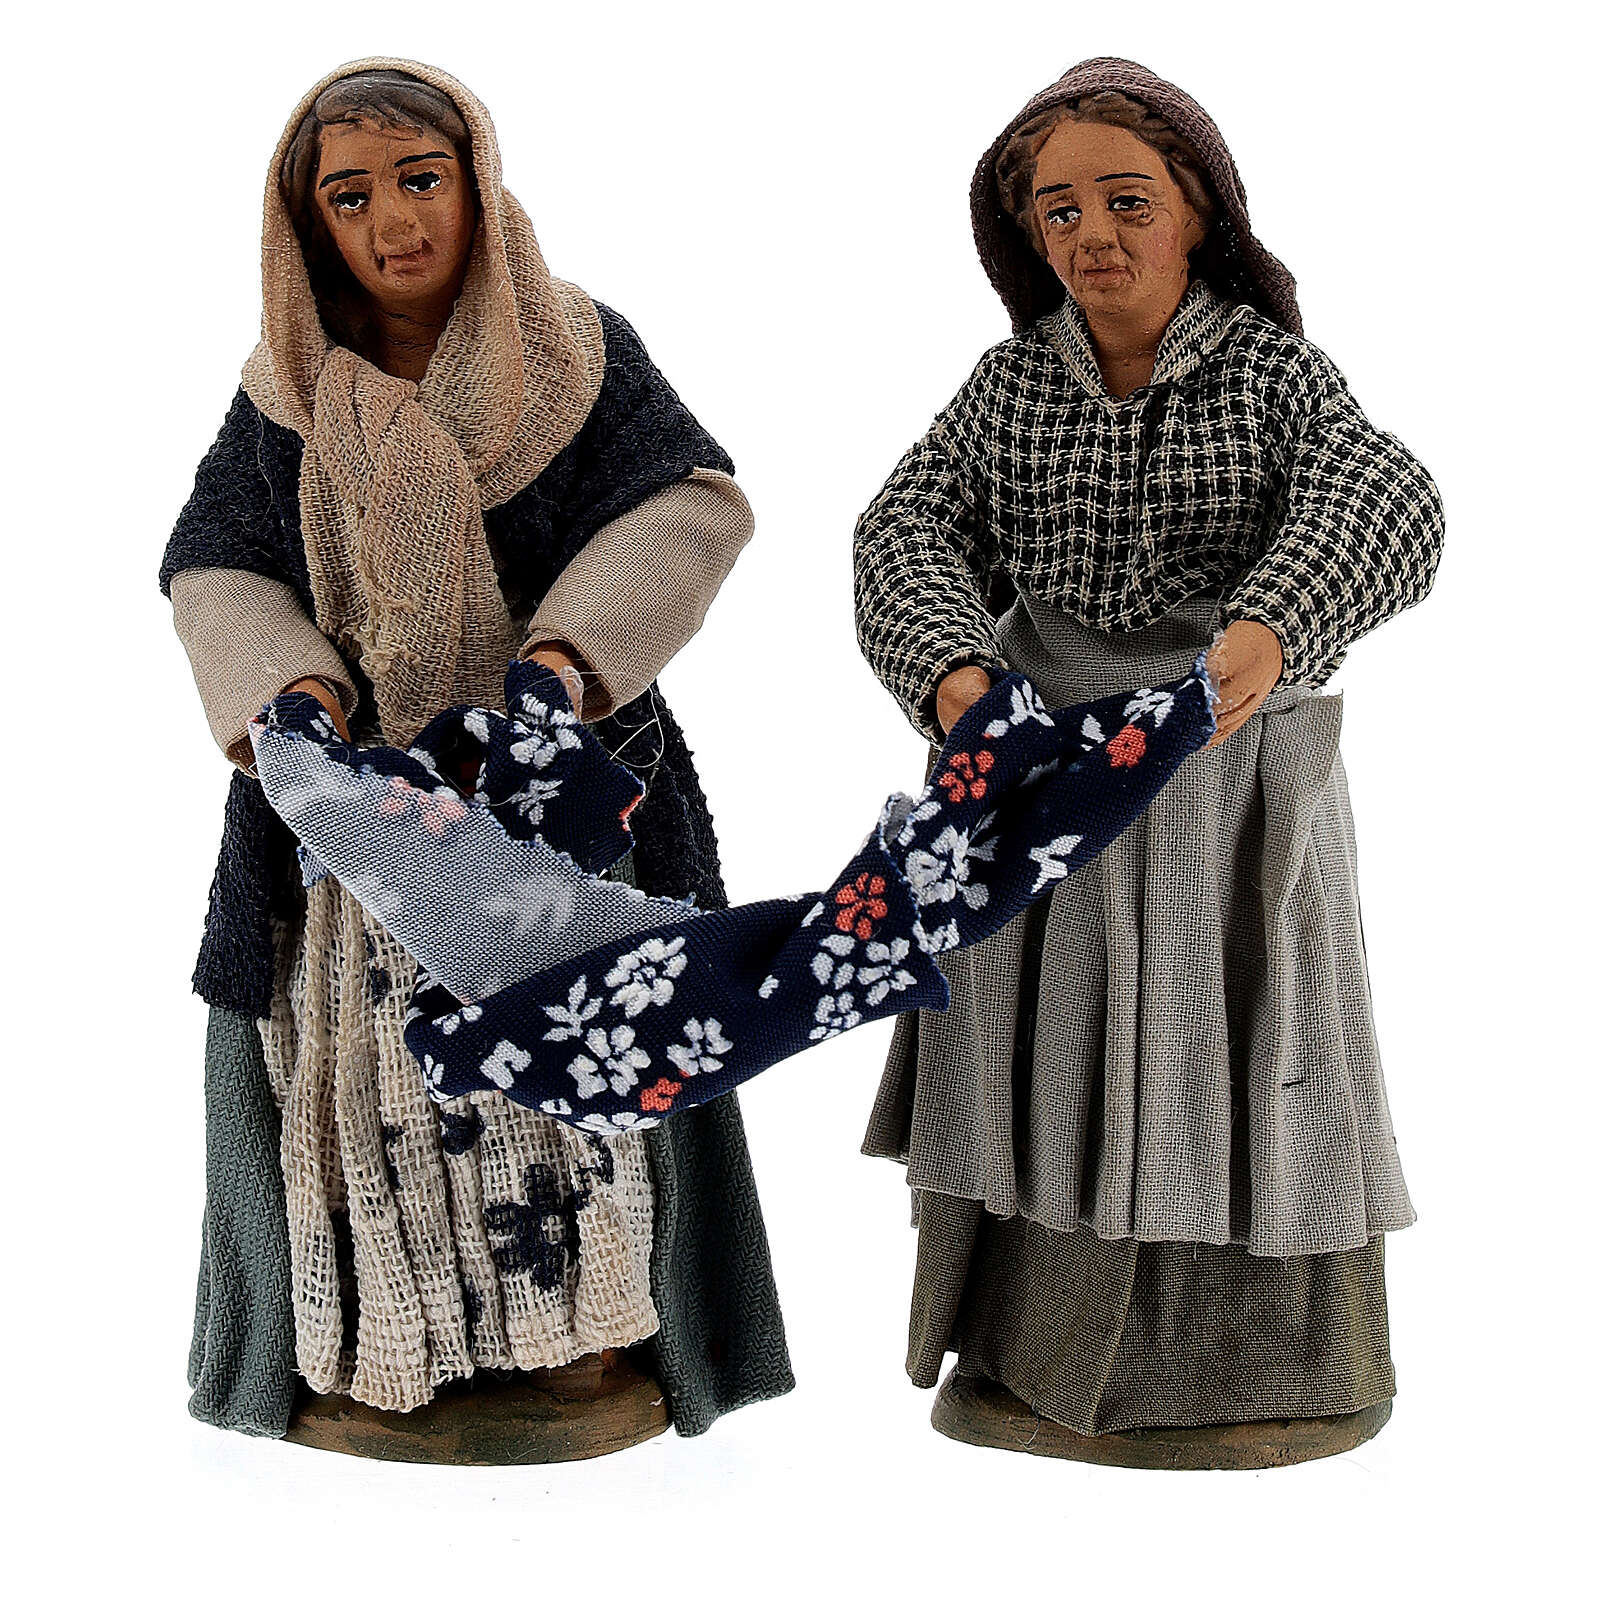 Women folding clothes Neapolitan Nativity Scene figurines 10 cm 4